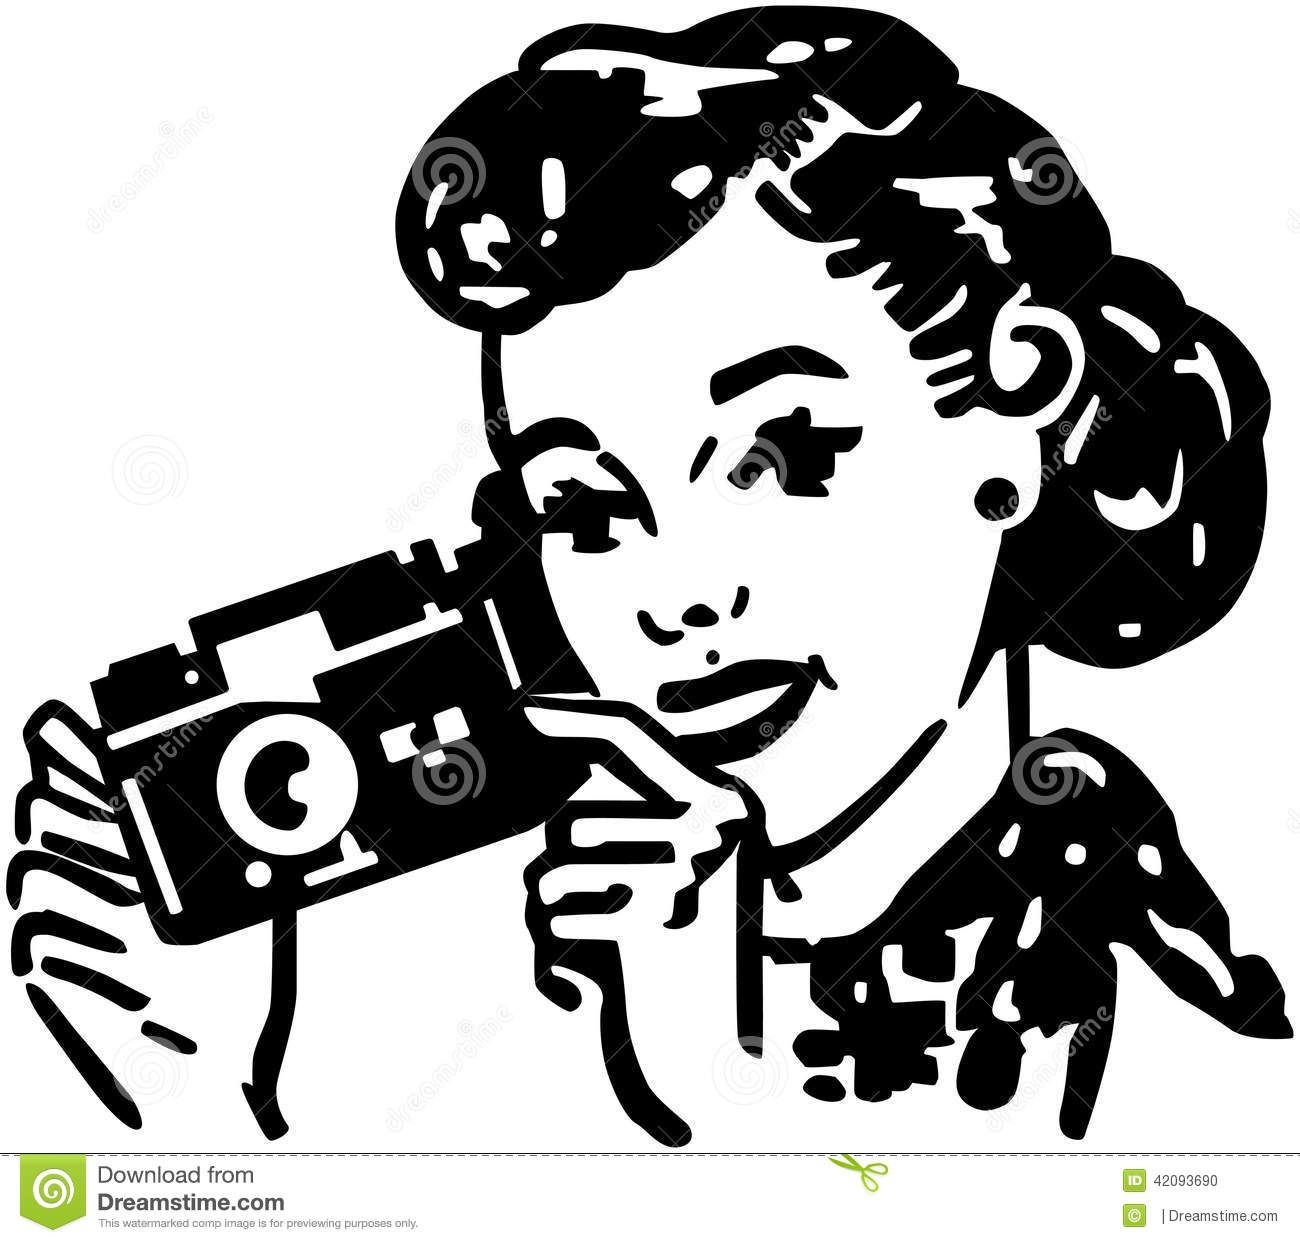 Camera lady clipart image clipart freeuse stock Woman With Camera Photo about beauty, forties, pretty, lady ... clipart freeuse stock